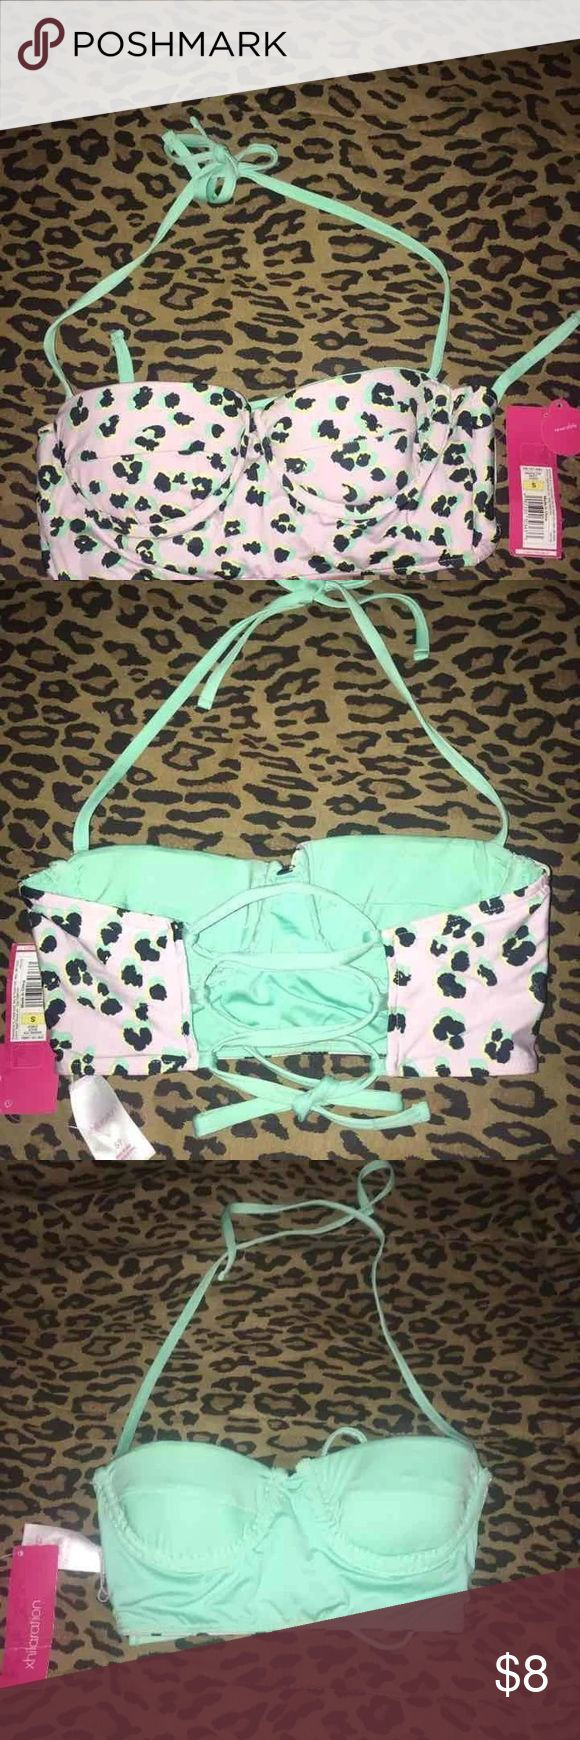 Leopard print mint bikini lace up corset top New with tags bustier style & reversible lace up leopard print bikini top. The top looks white but has a very faint hint of lavender color background. Reverses to all mint. Lightly padded molded cups with underwire. Xhilaration Swim Bikinis